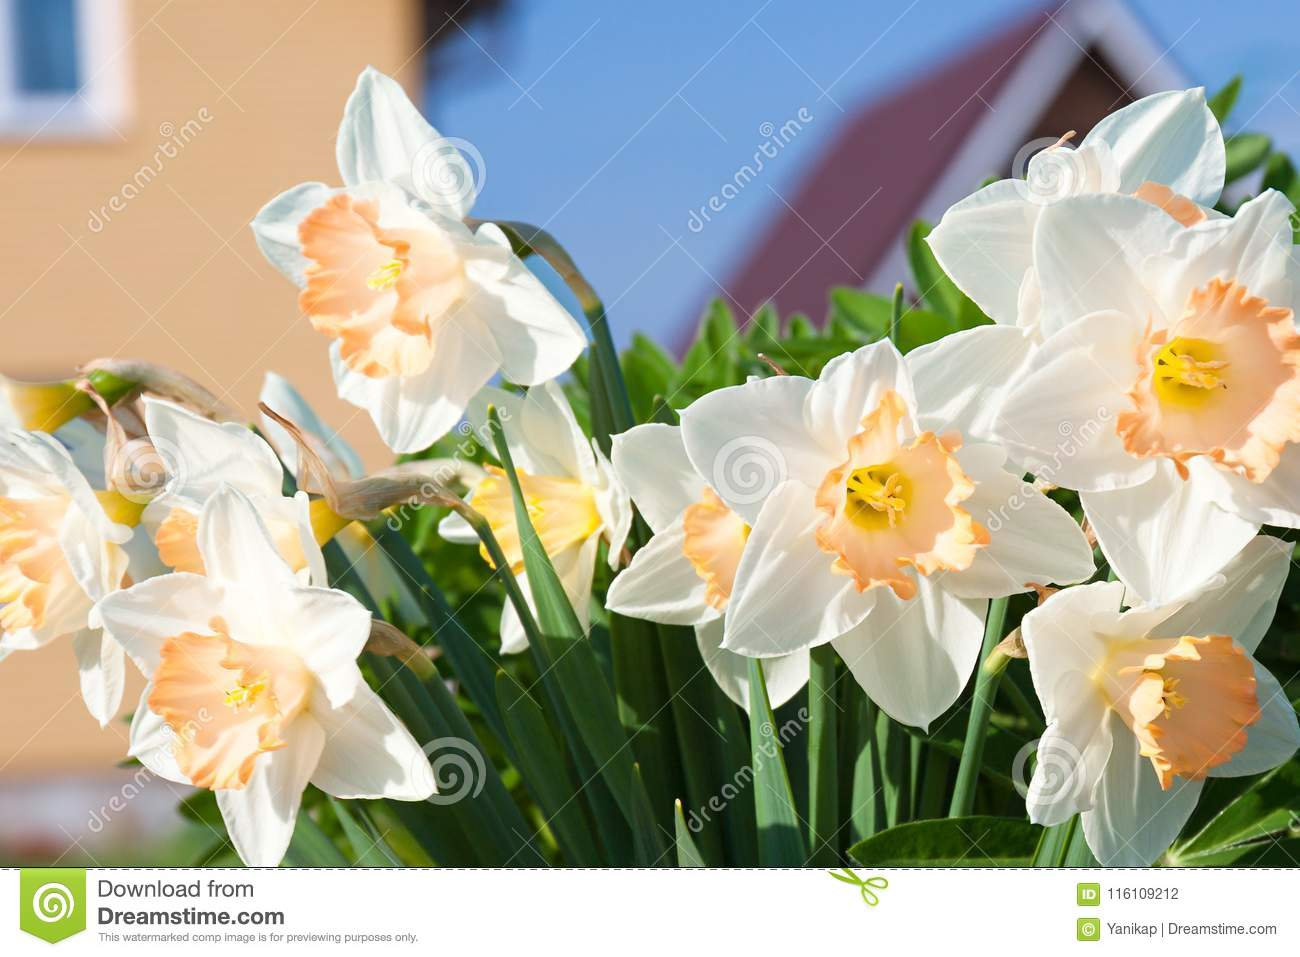 Spring flowers daffodils blossomed in garden stock photo image of spring flowers daffodils blossomed in garden mightylinksfo